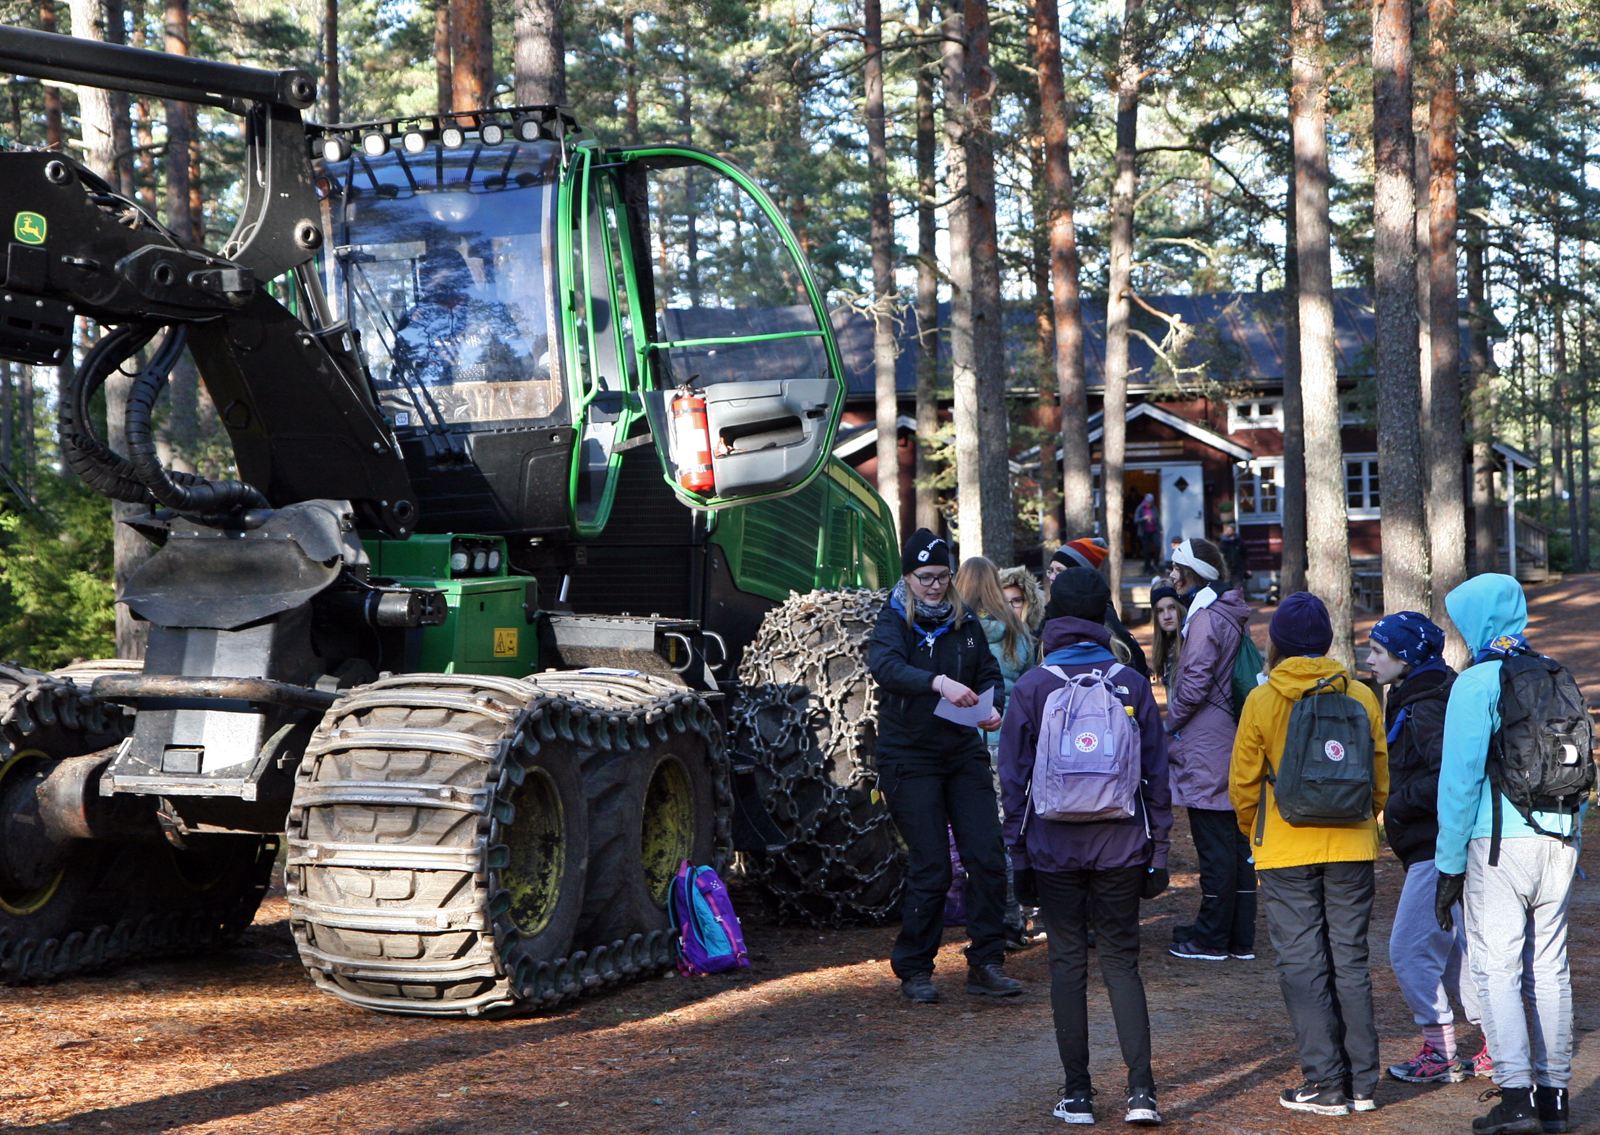 The activity trail was part of the Explo, an event organized in October in and around Salo for the Explorers, who are 15 to 17 years of age. Photo: Anna Kauppi